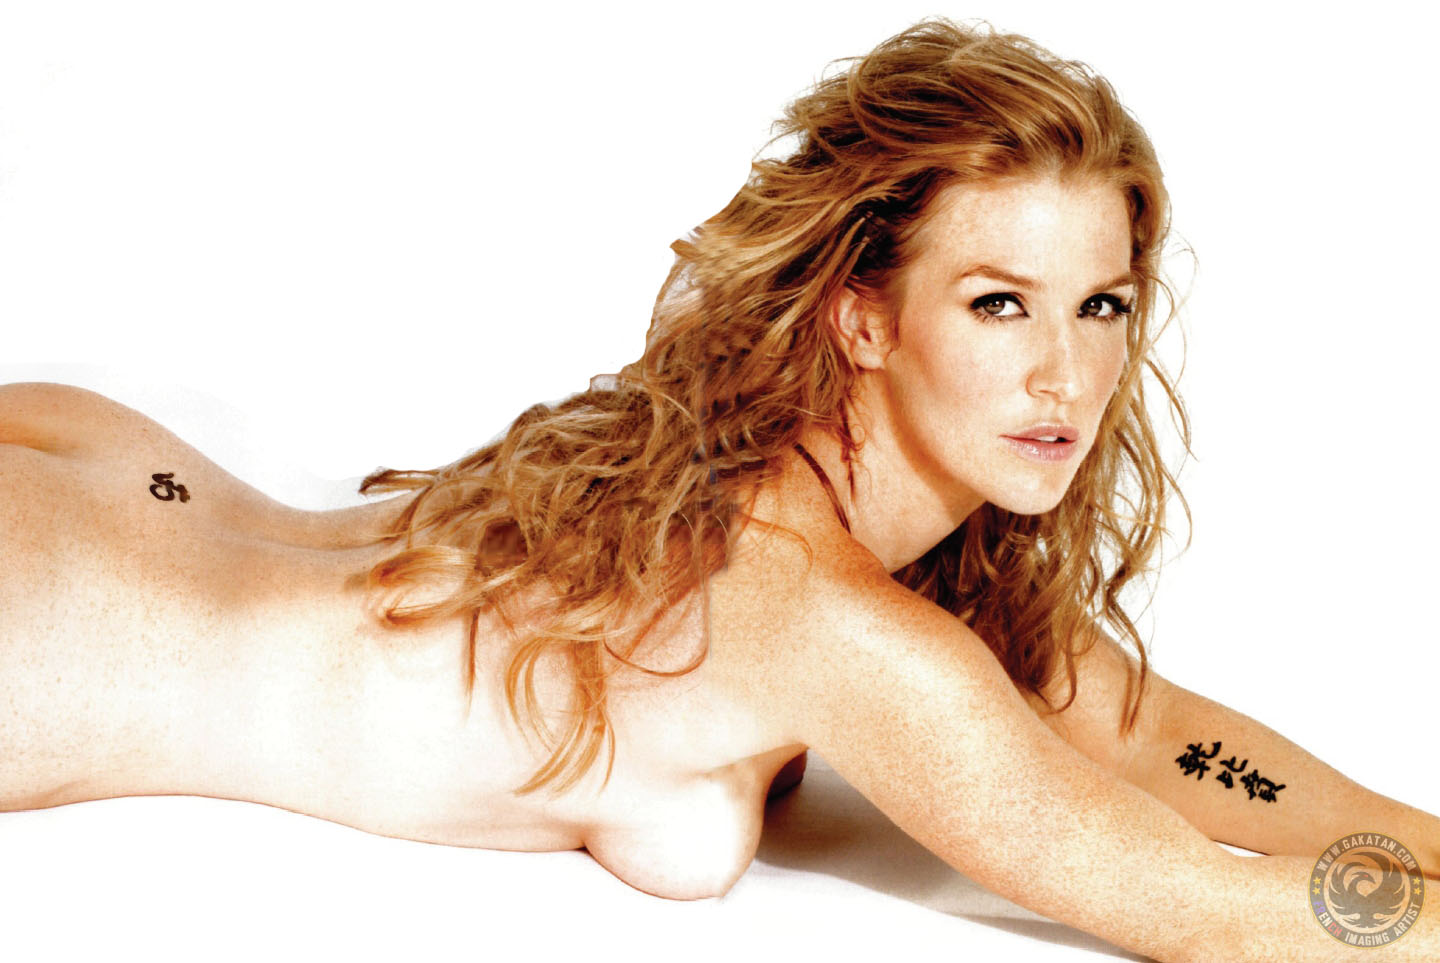 Poppy montgomery nude topless excellent